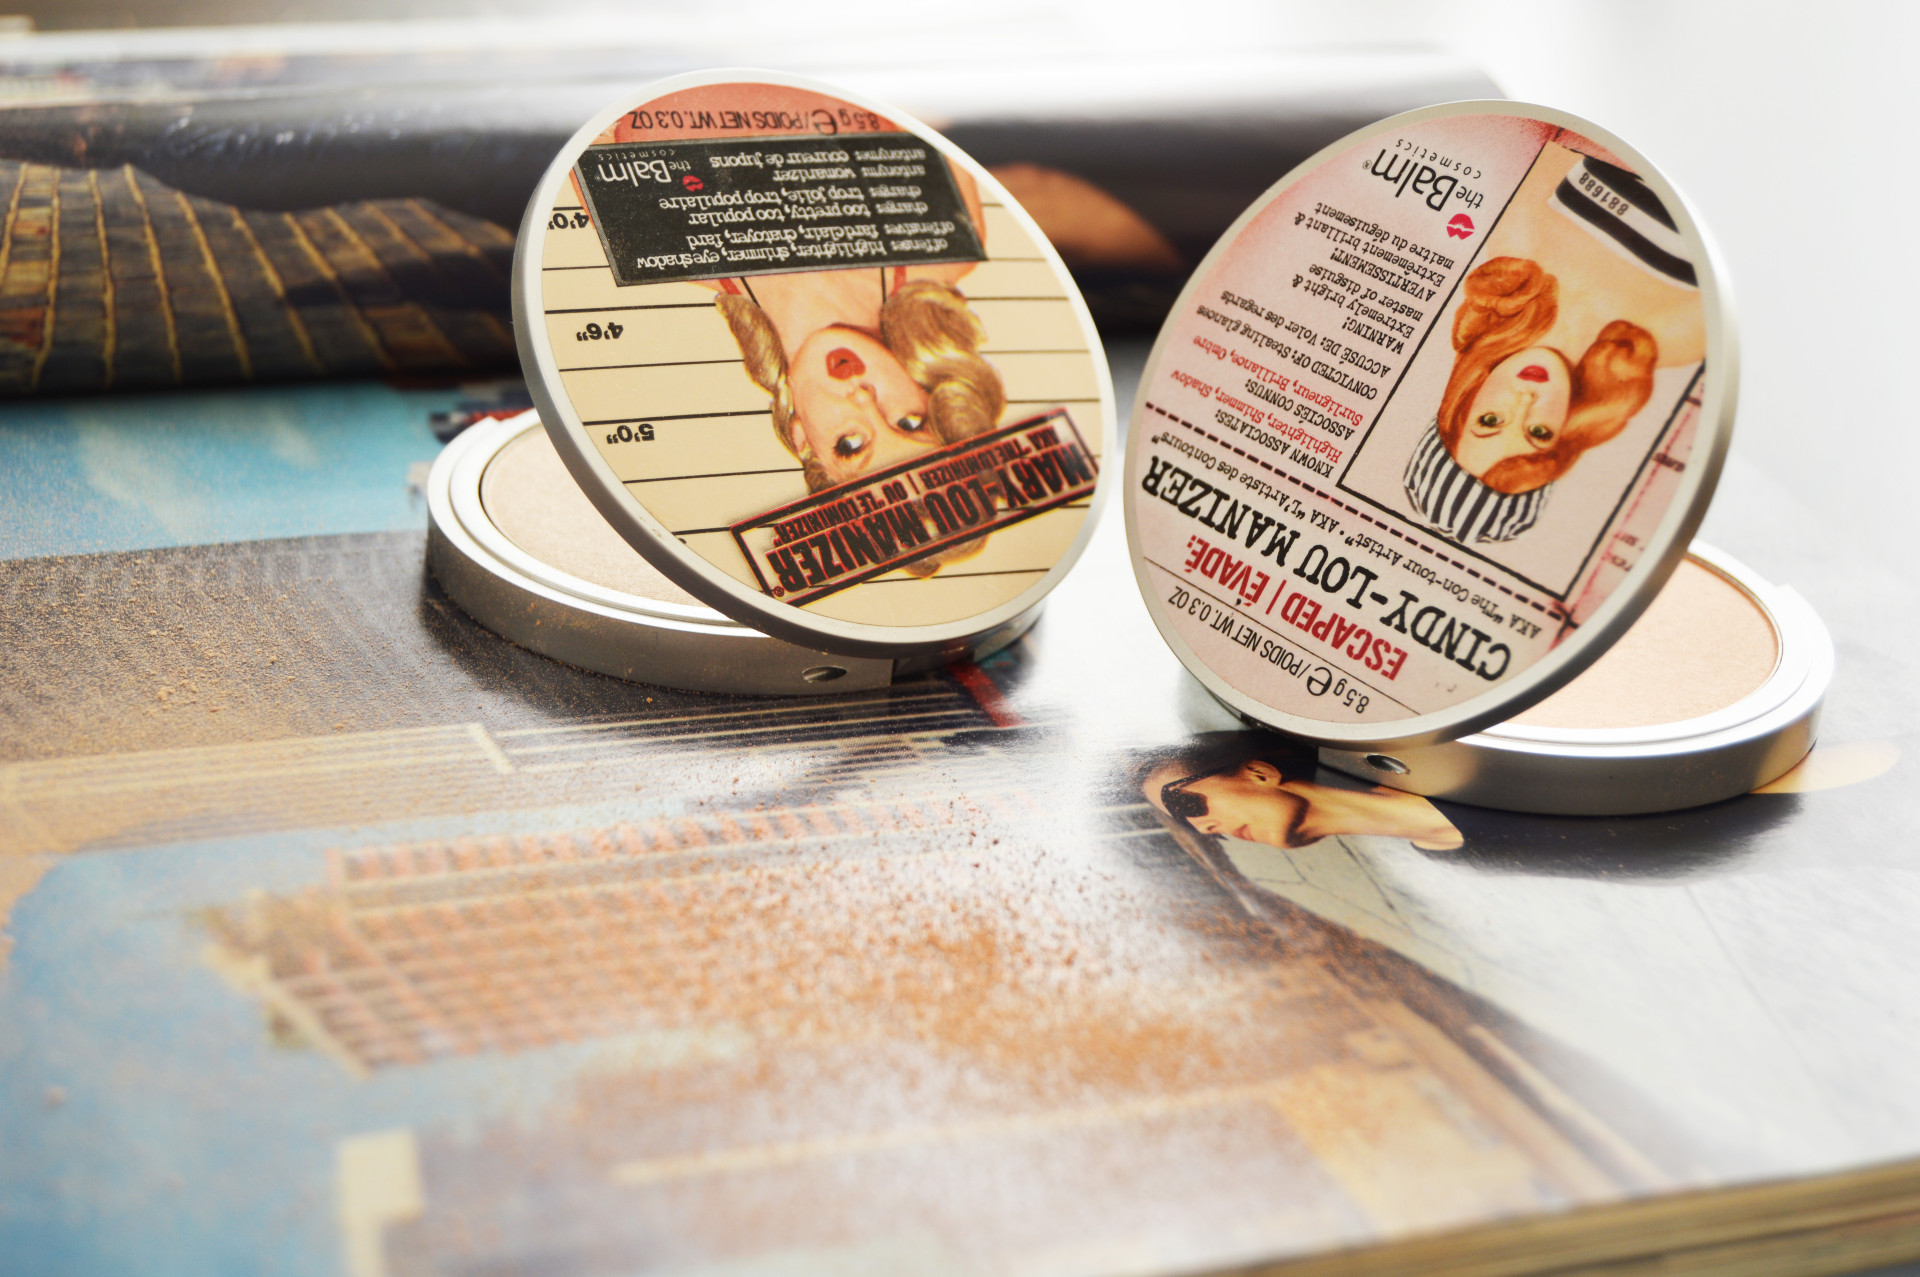 theBalm Lou Manizer | Mary-Lou Manizer and theBalm Cindy-Lou Manizer | Two highlighters which are easy to work with and give flawless finish with nice glow. Click through link to see the swatches of theBalm highlighters.